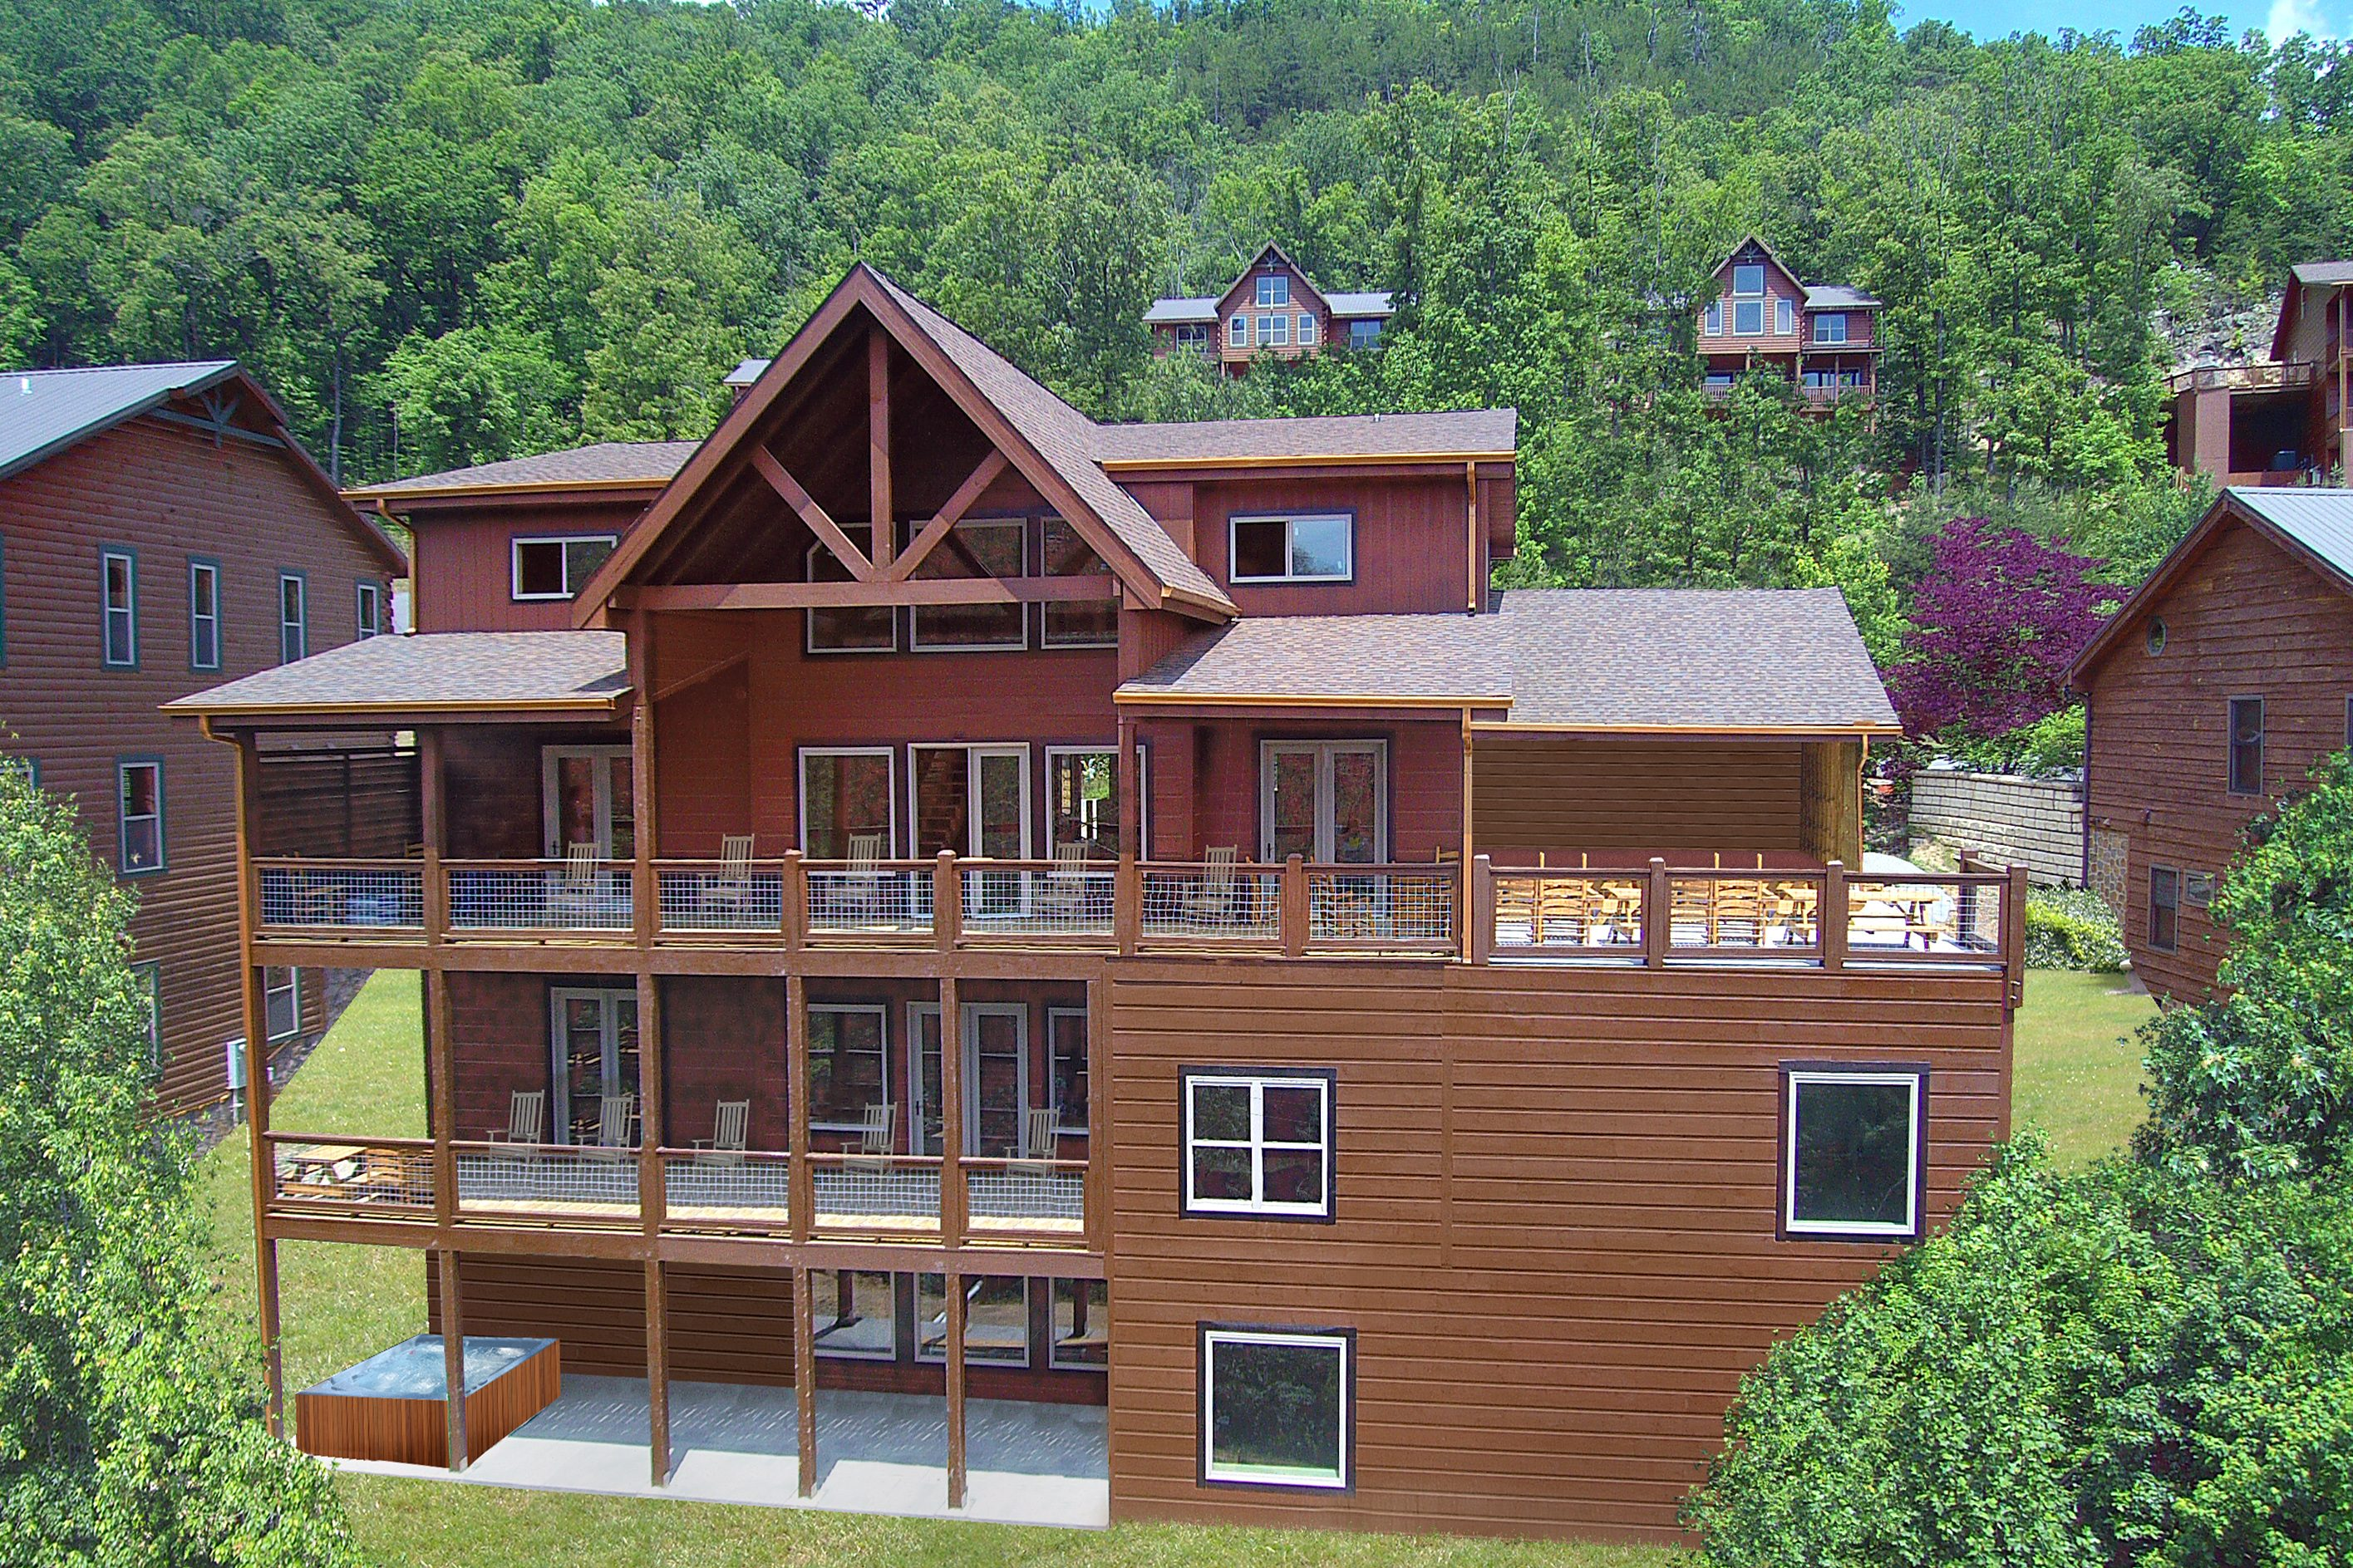 cabin tn secluded cabins with pigeon pool for rent indoor private s gatlinburg friendly pet rentals forge rental in